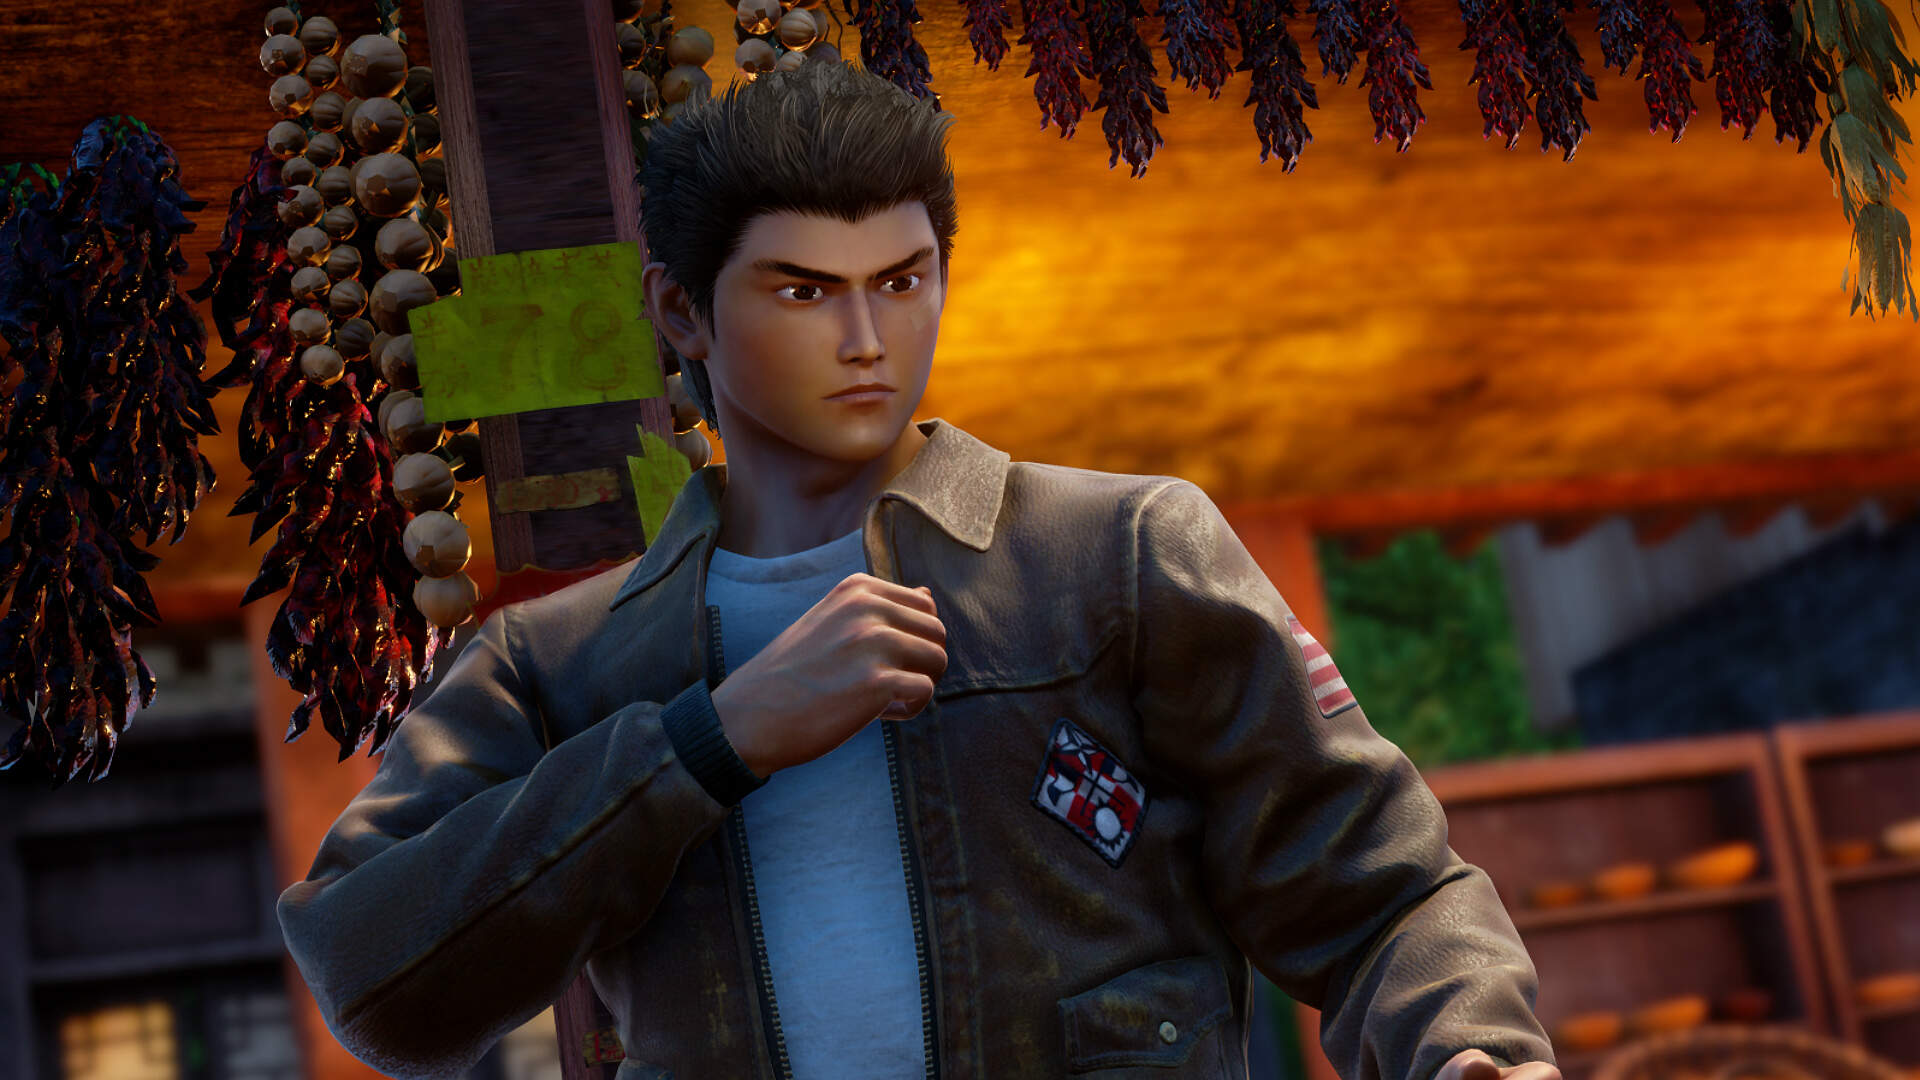 Refunds Are Being Offered To Shenmue 3 Kickstarter Backers Who Don't Want To Wait A Year For Steam